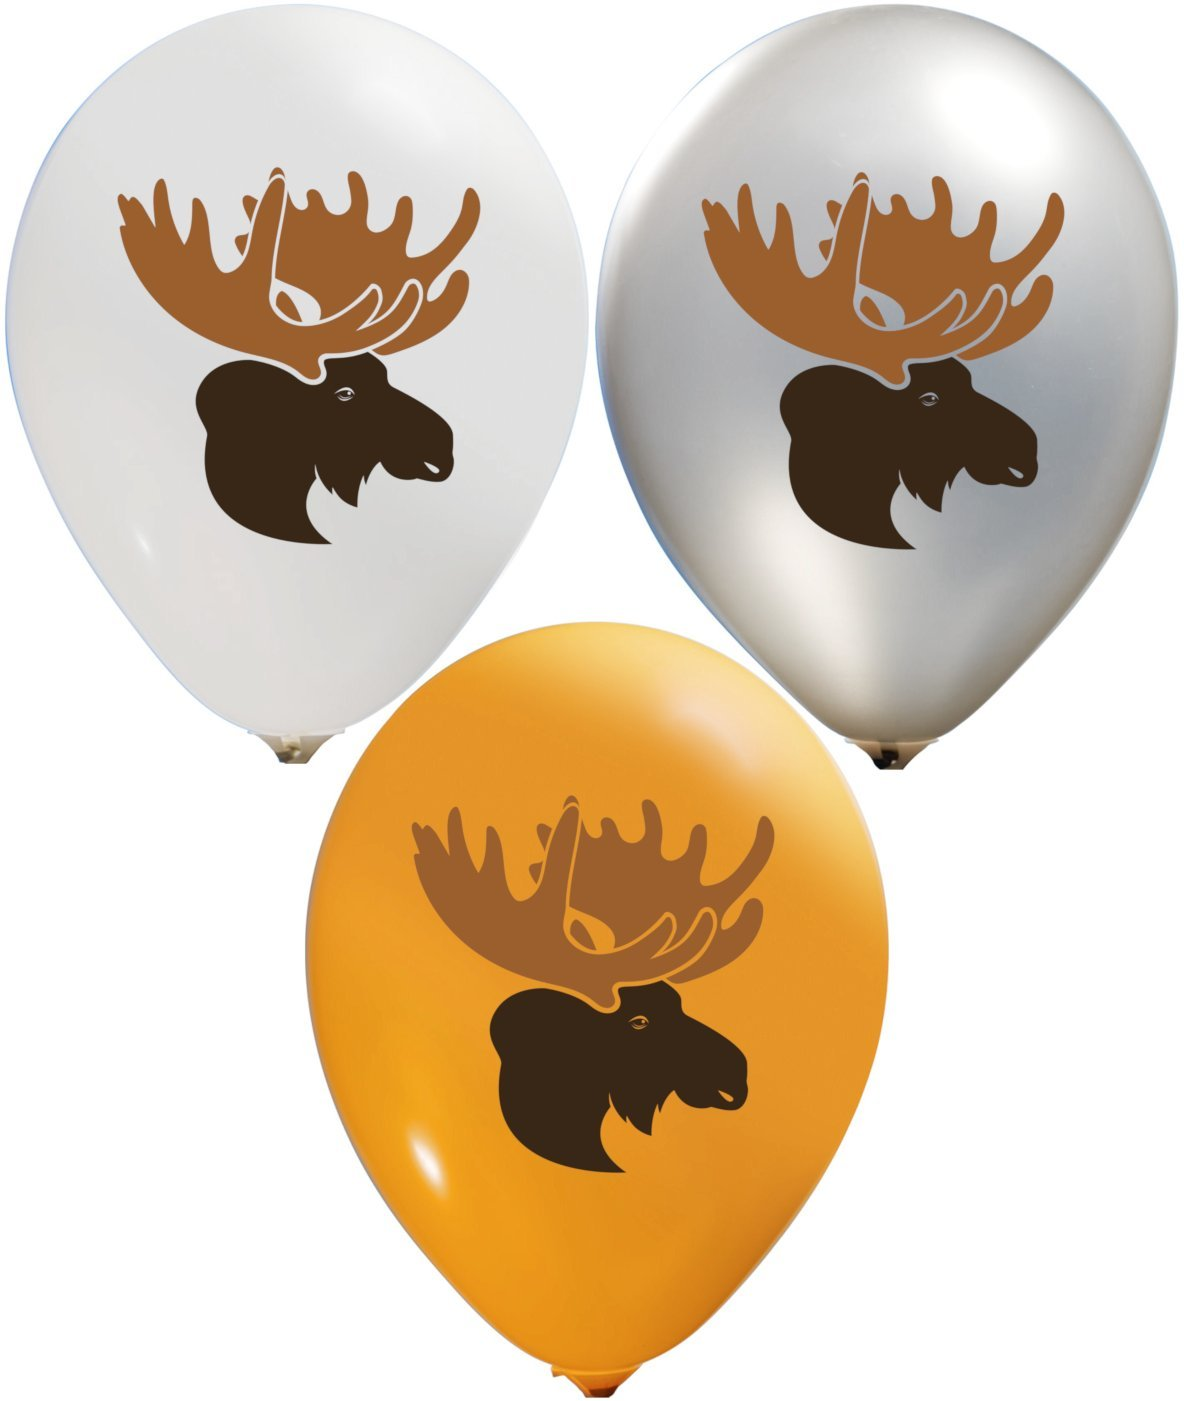 Moose Balloons | Colorful Latex Balloons (20-Count) Happy Birthday Party or Event Use | Fill with Air or Helium | Kid-Friendly